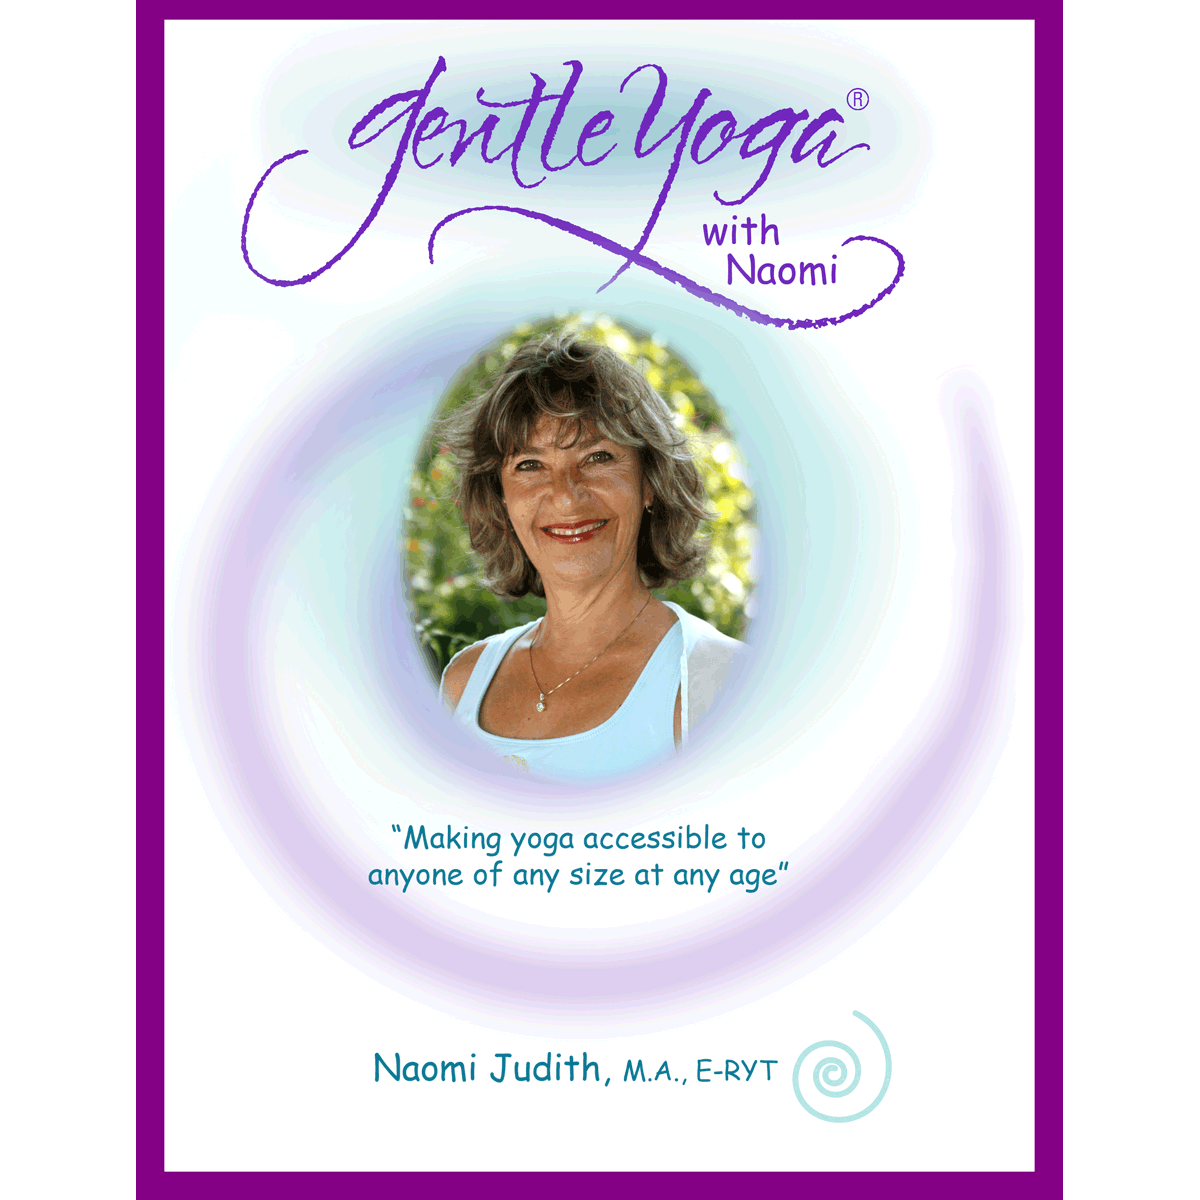 Gentle Yoga with Naomi Student Yoga Manual Cover